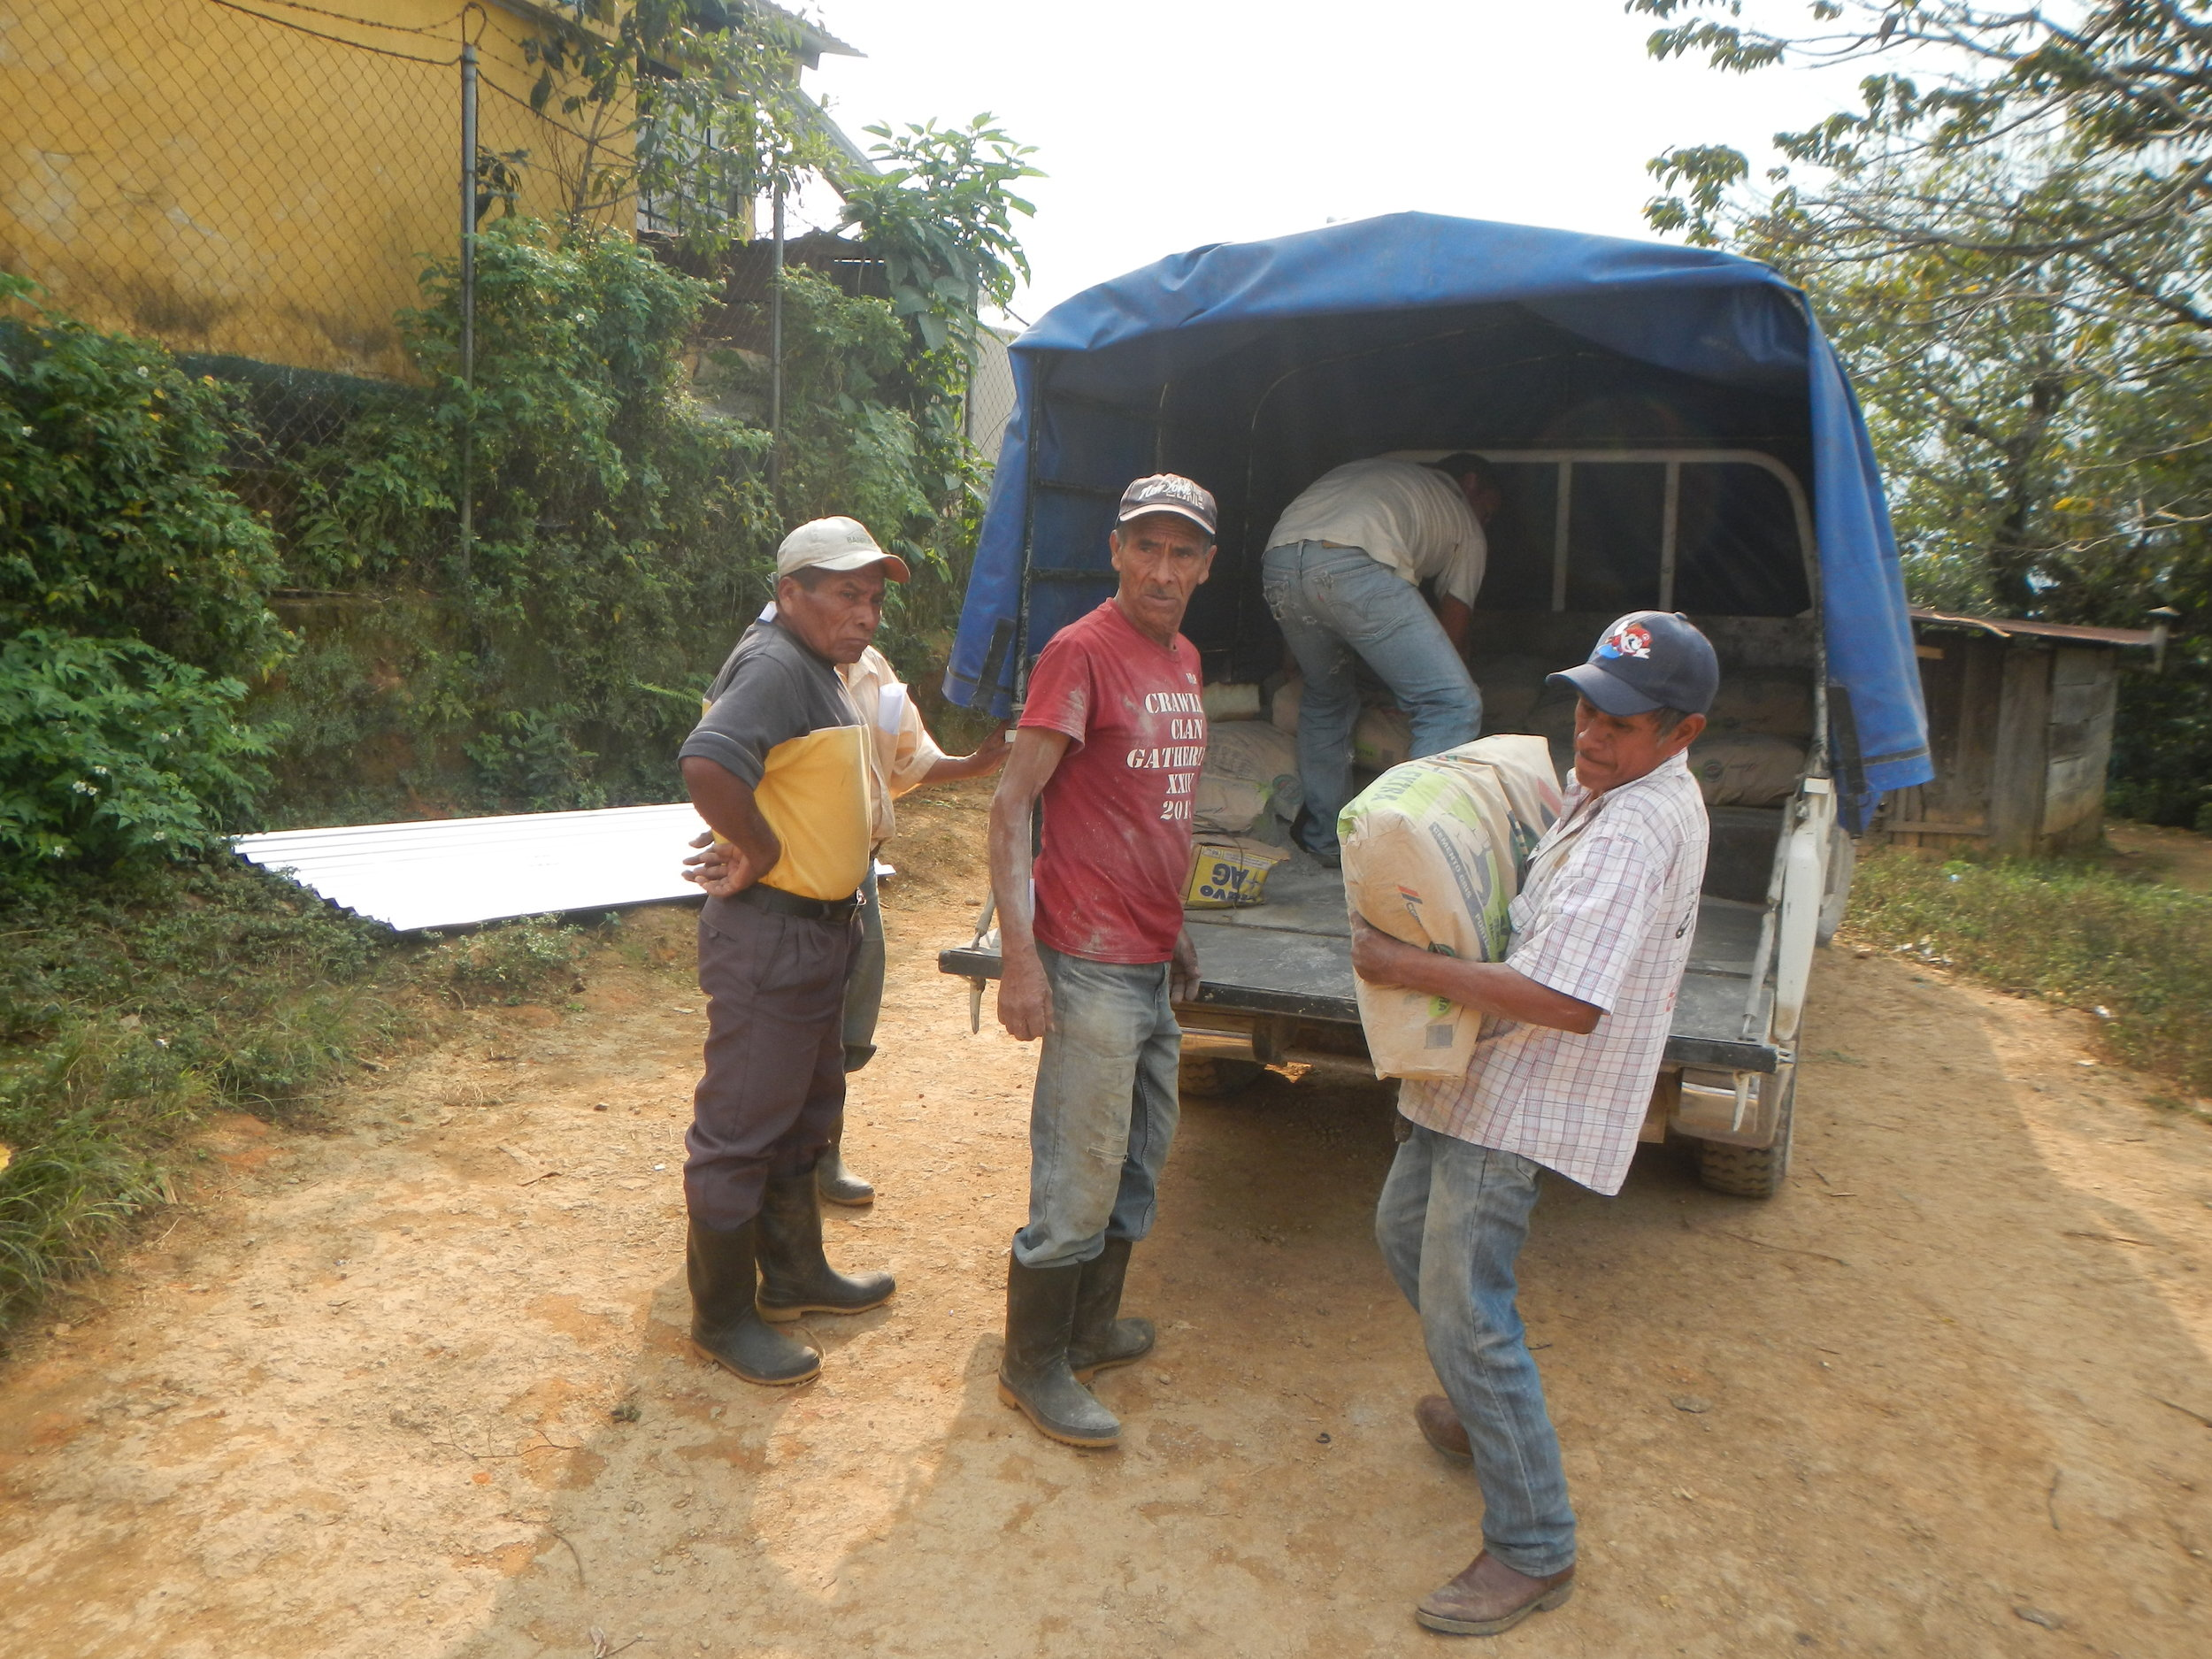 San Francisco villagers loading supplies to build the tank system